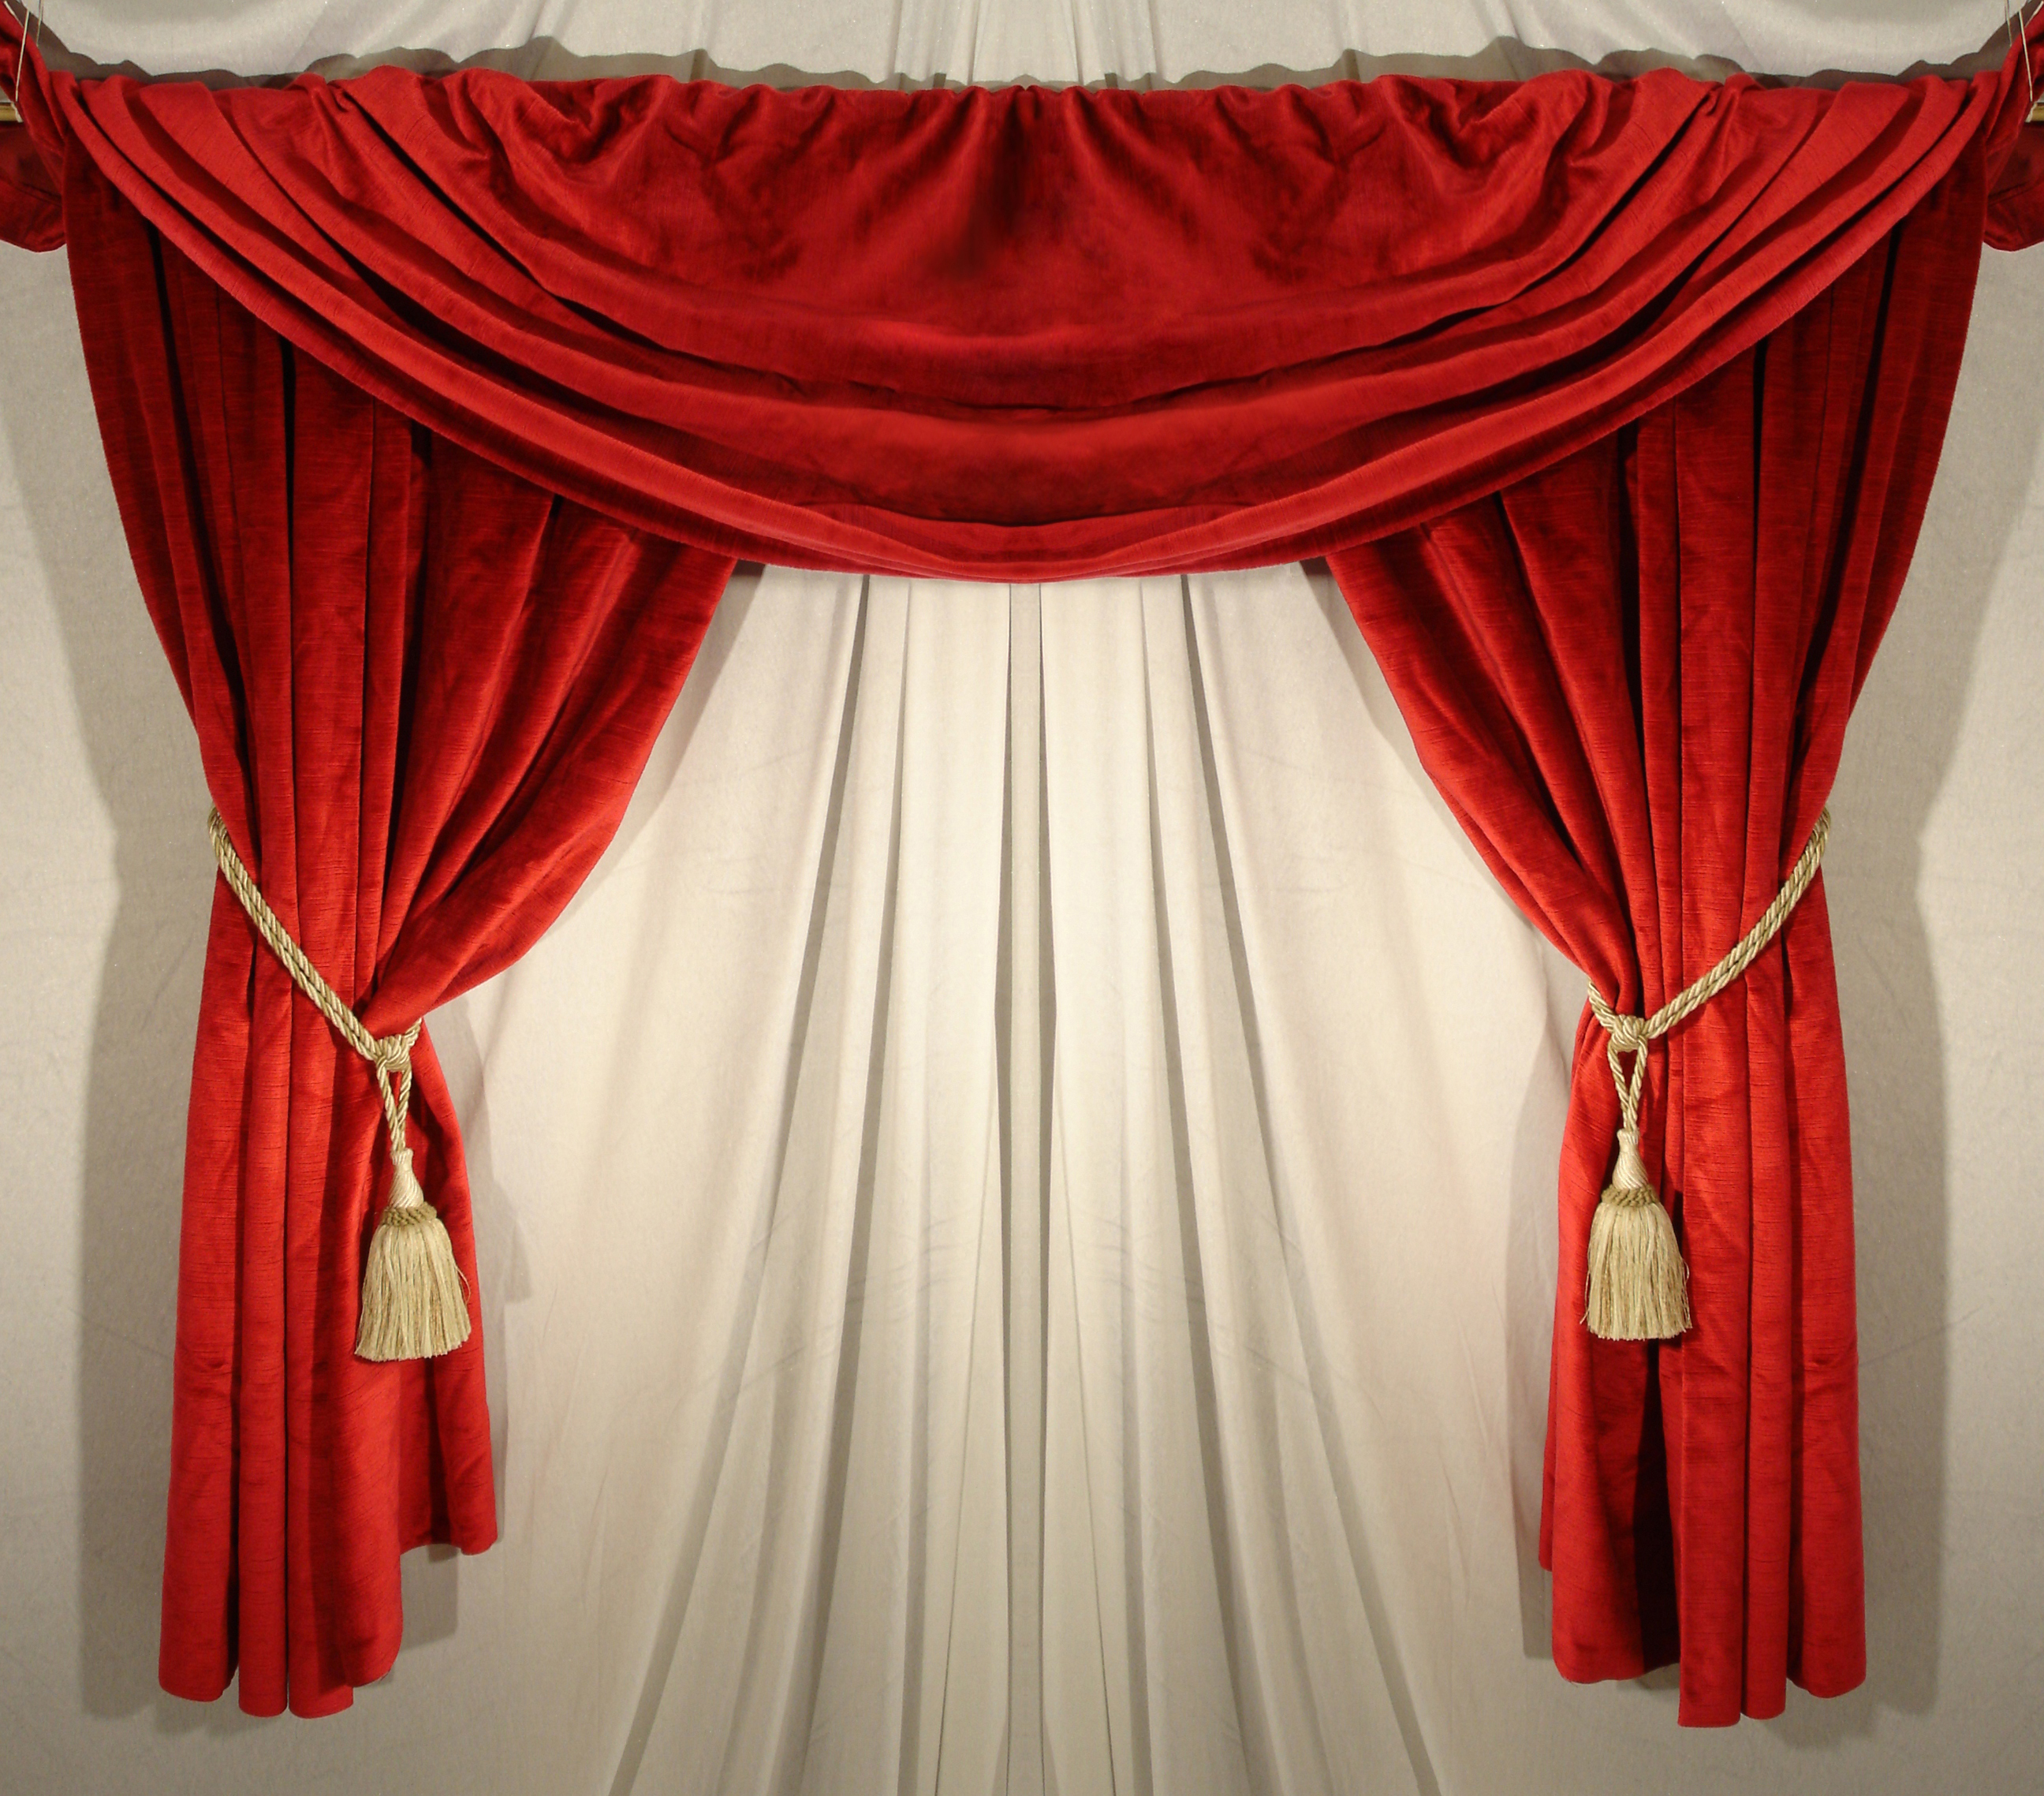 curtain___04_by_lunanyxstock